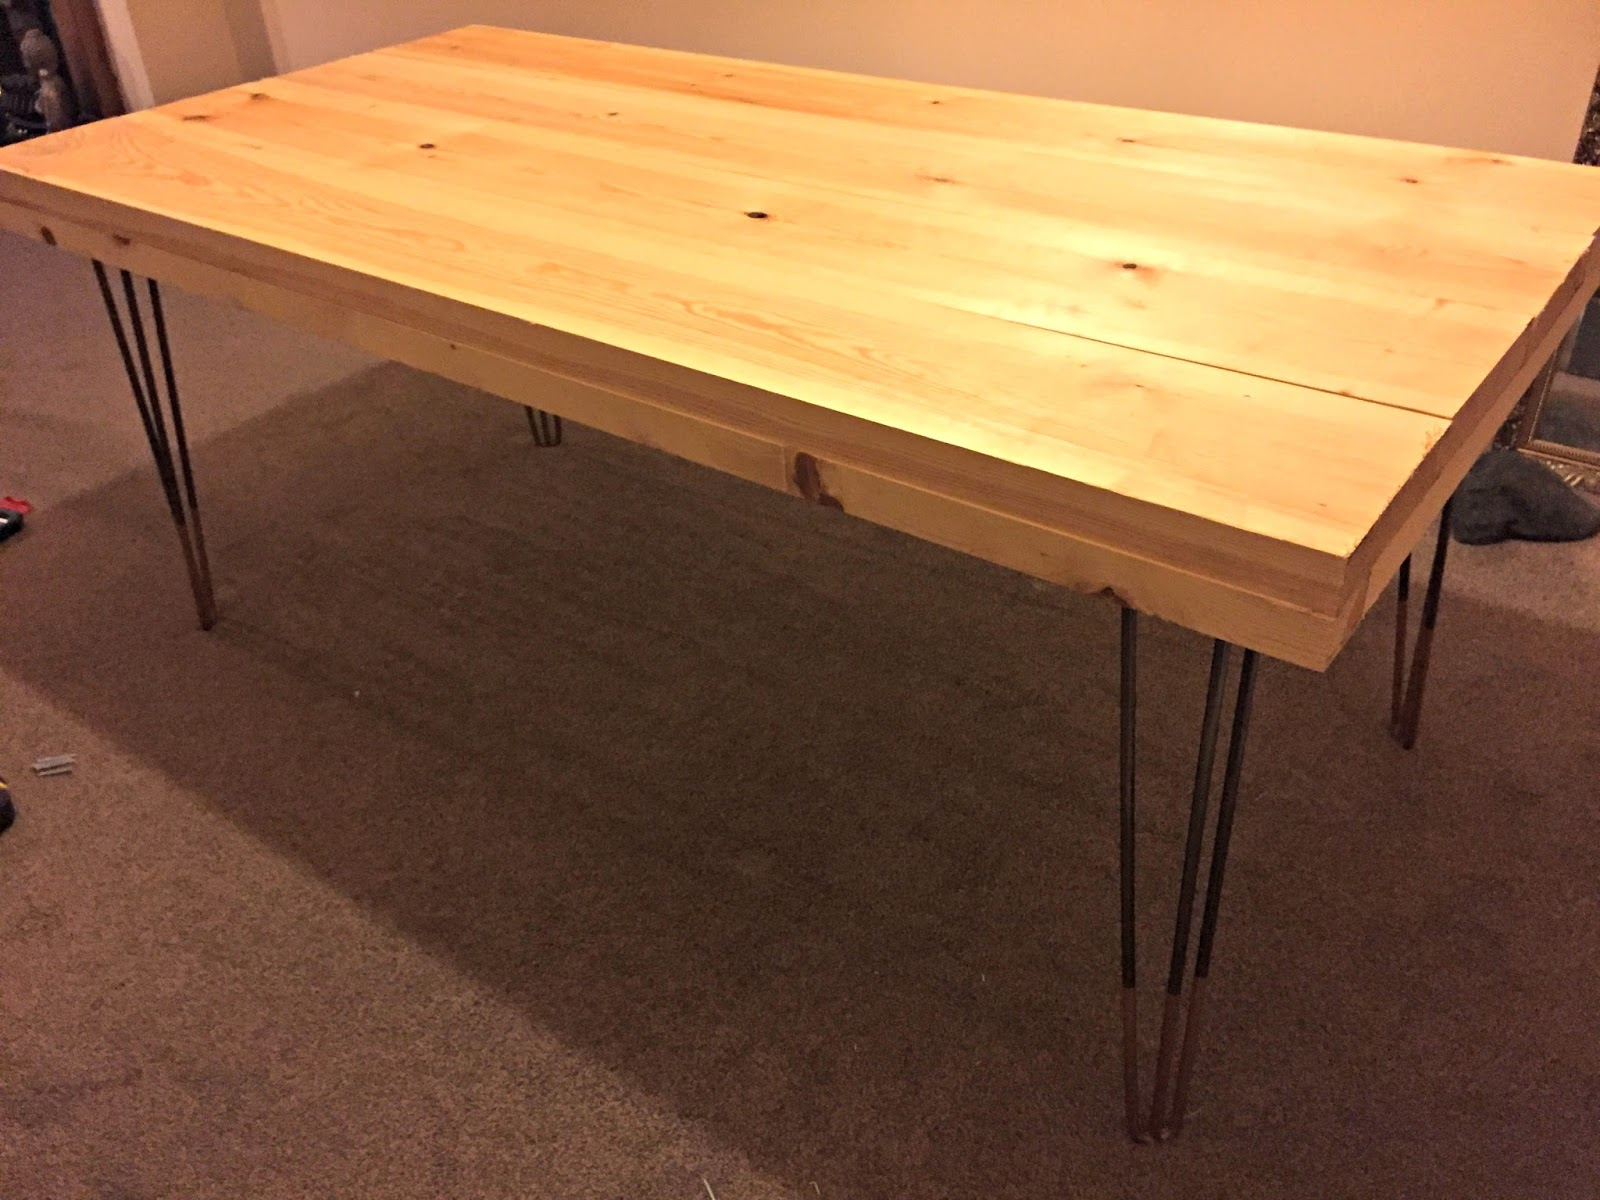 DIY Tutorial - Rustic Dining Table with Hairpin Legs | Tea ...